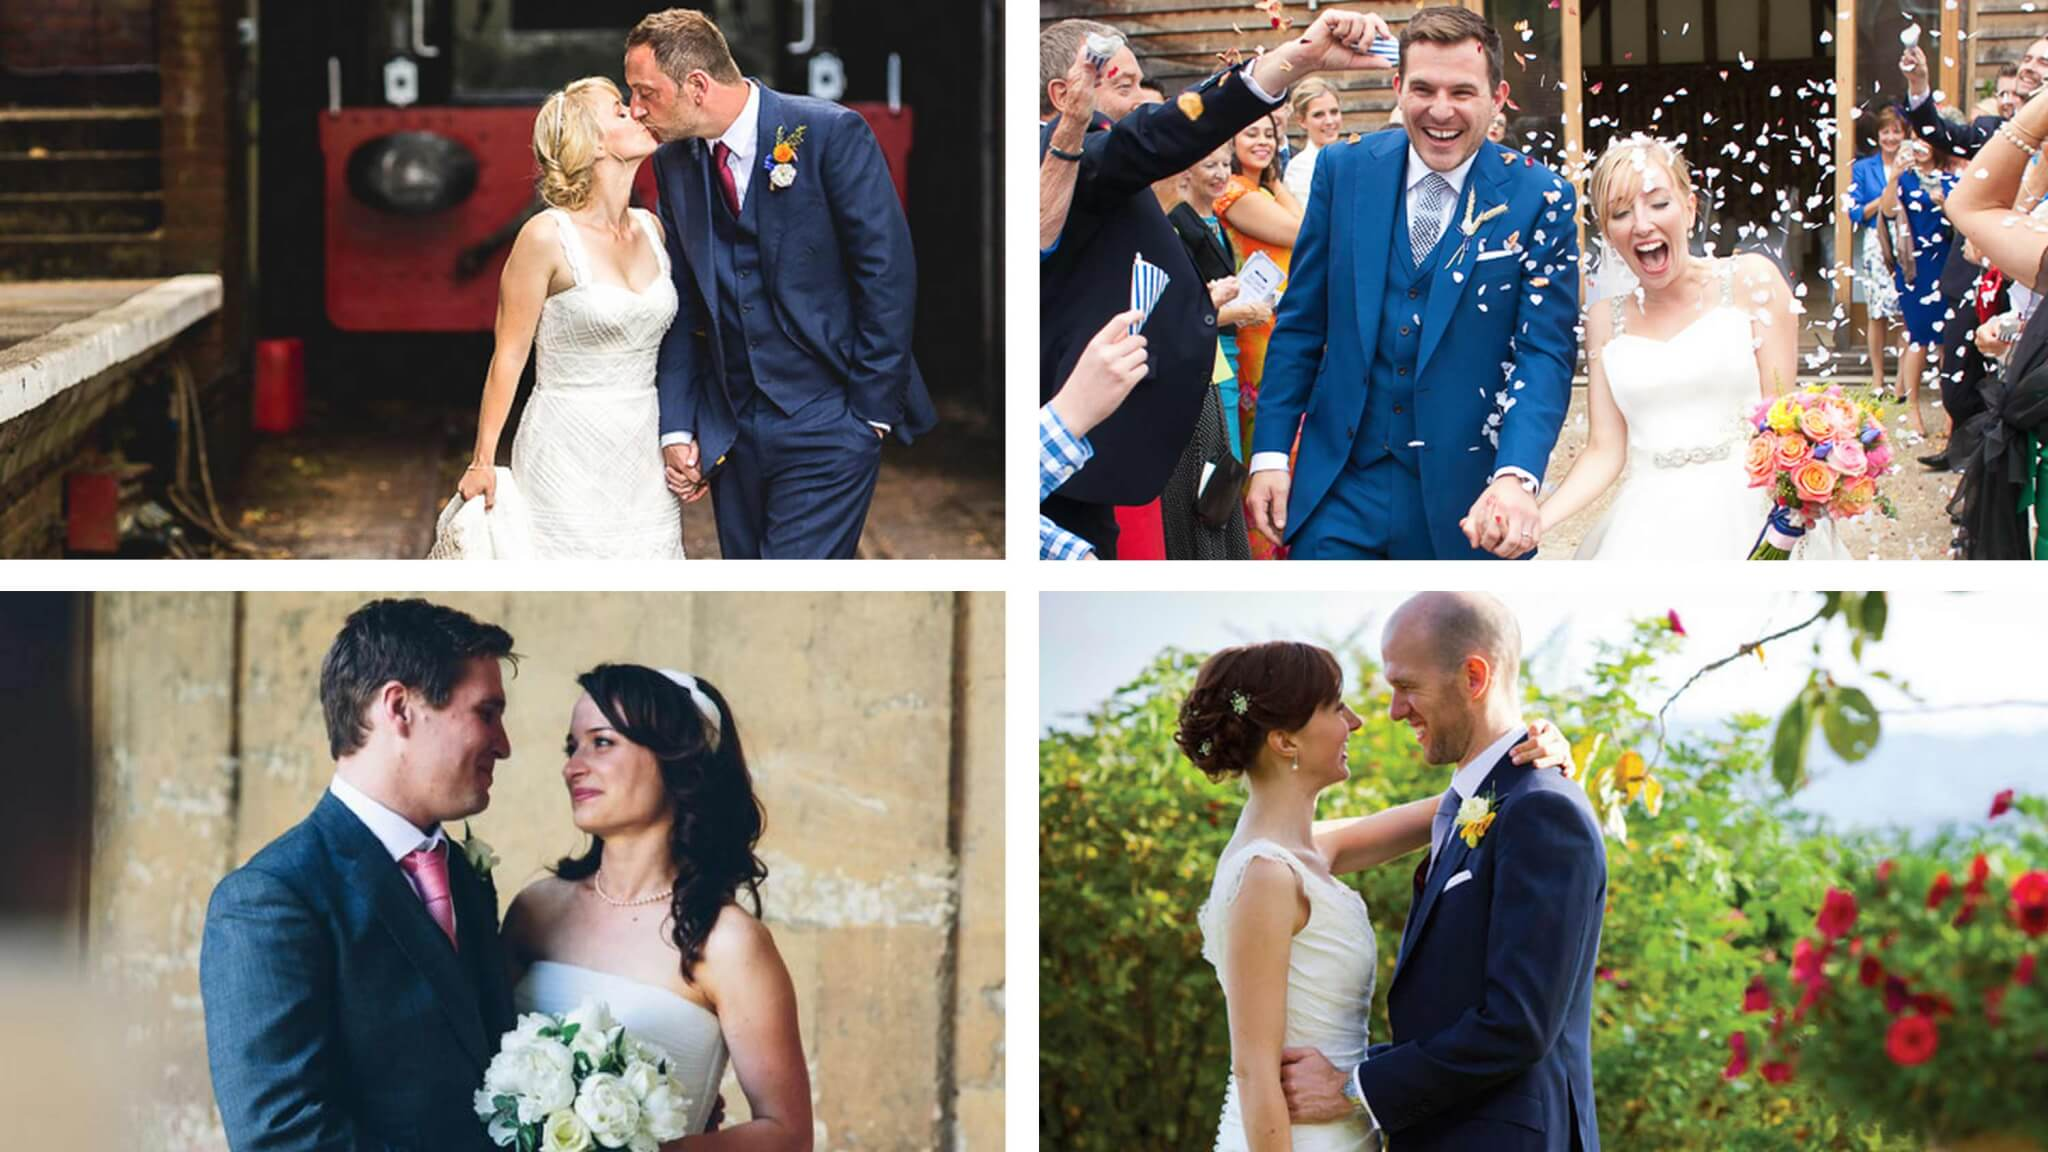 Bespoke Wedding Suits Savile Row